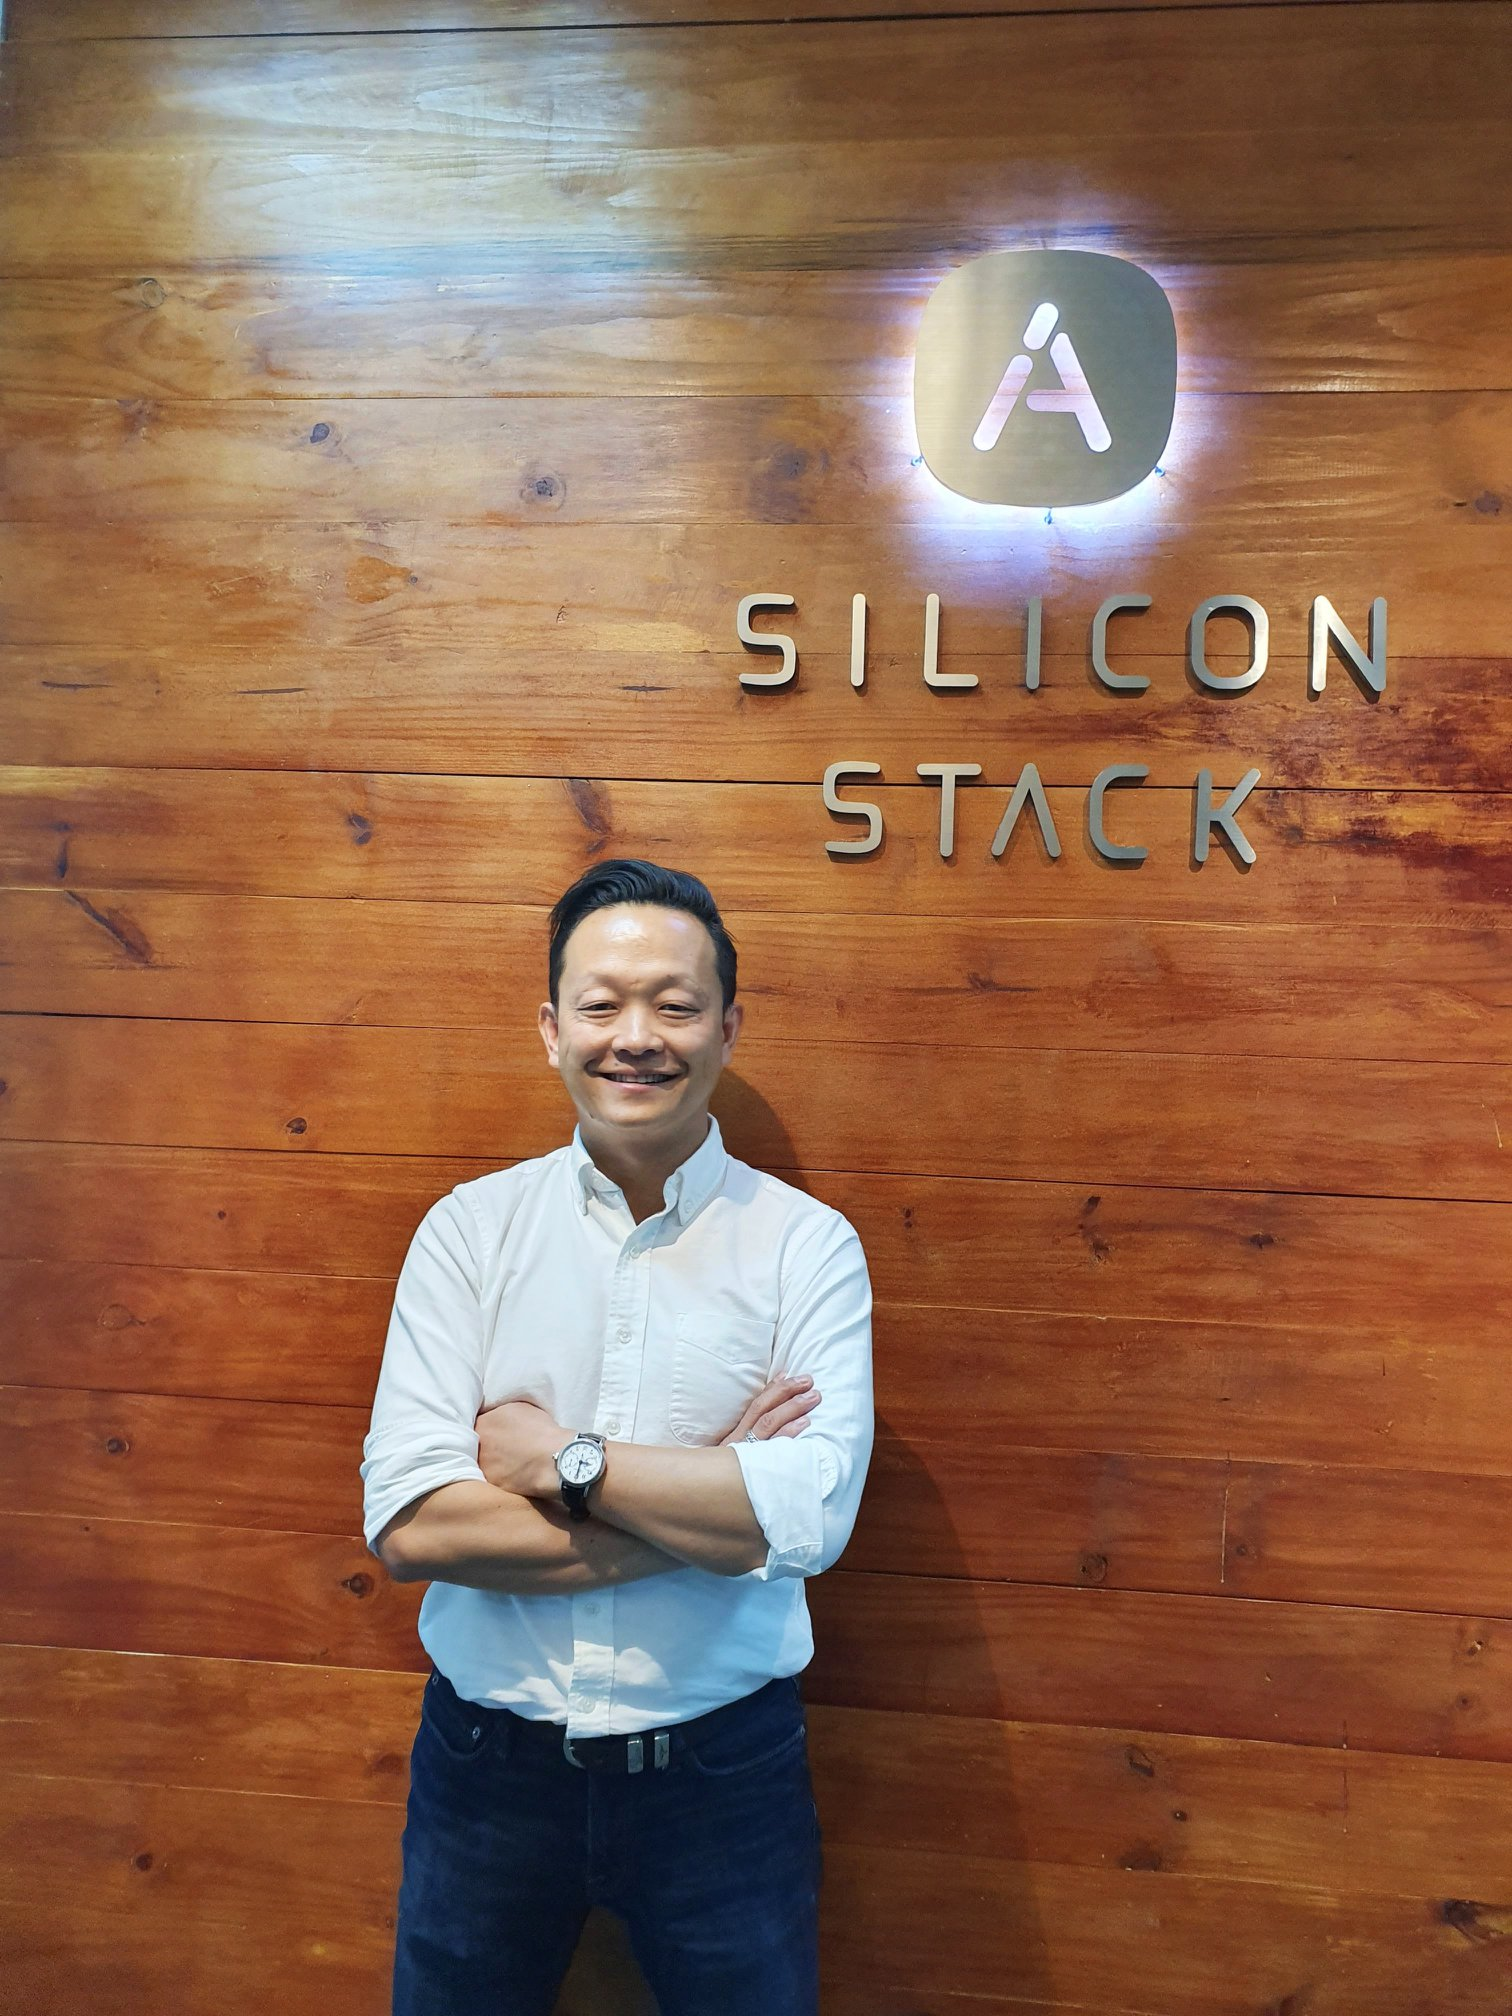 Silicon Stack